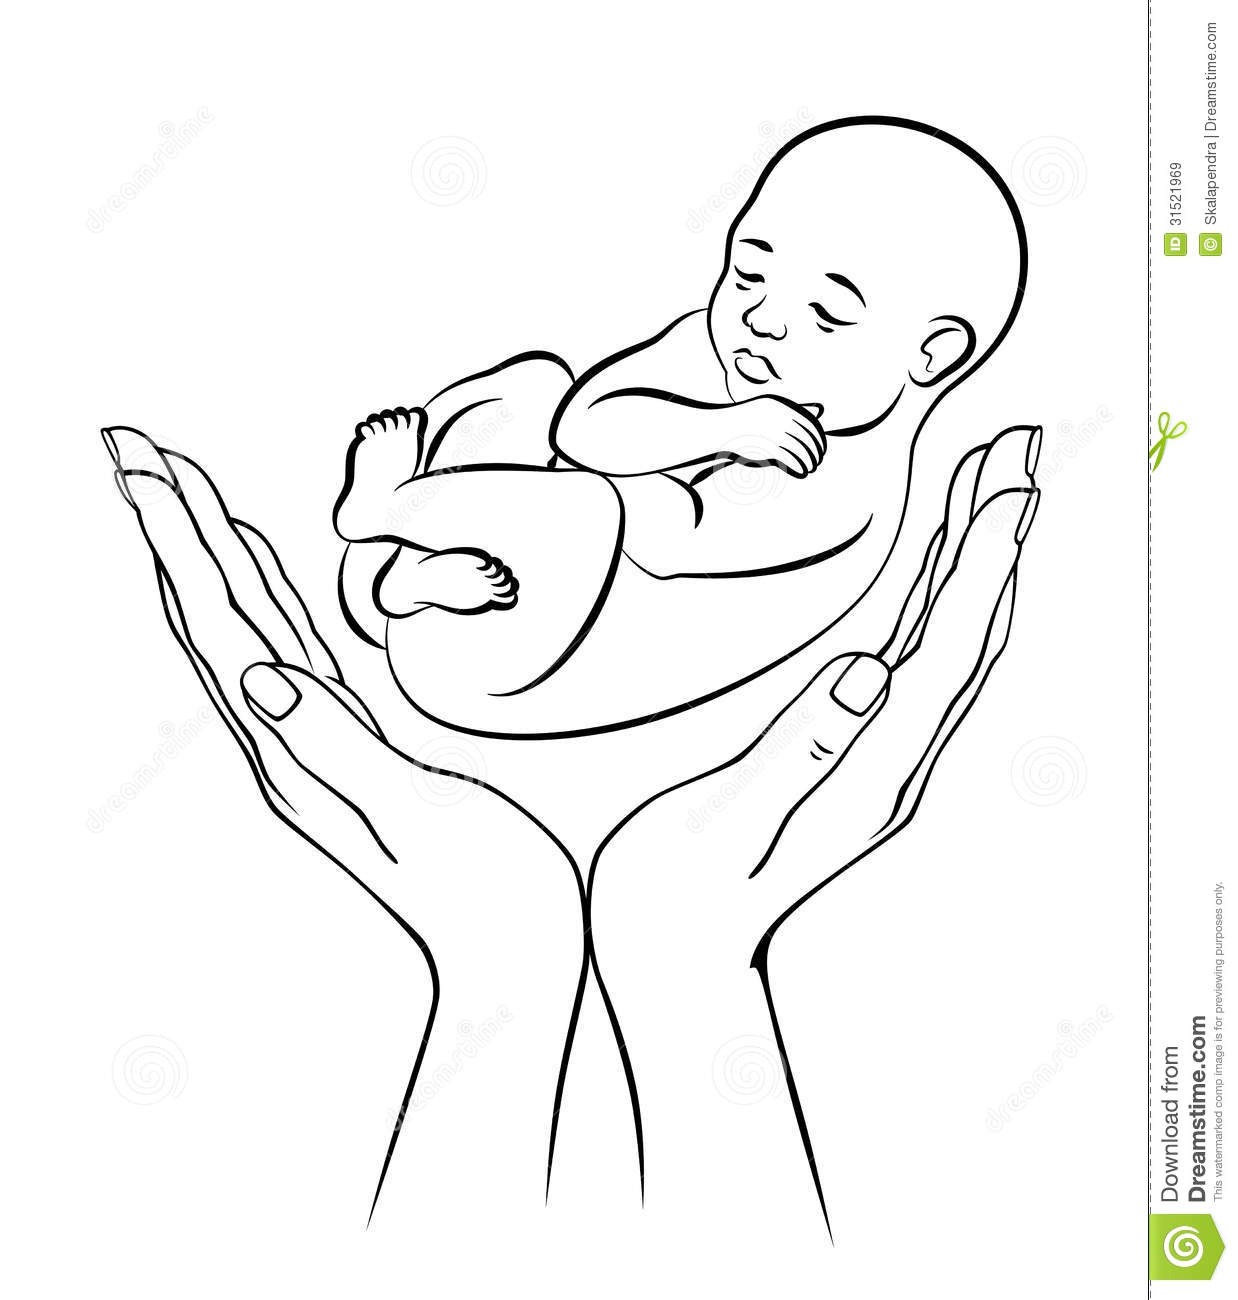 Baby Safety Royalty Free Stock Images